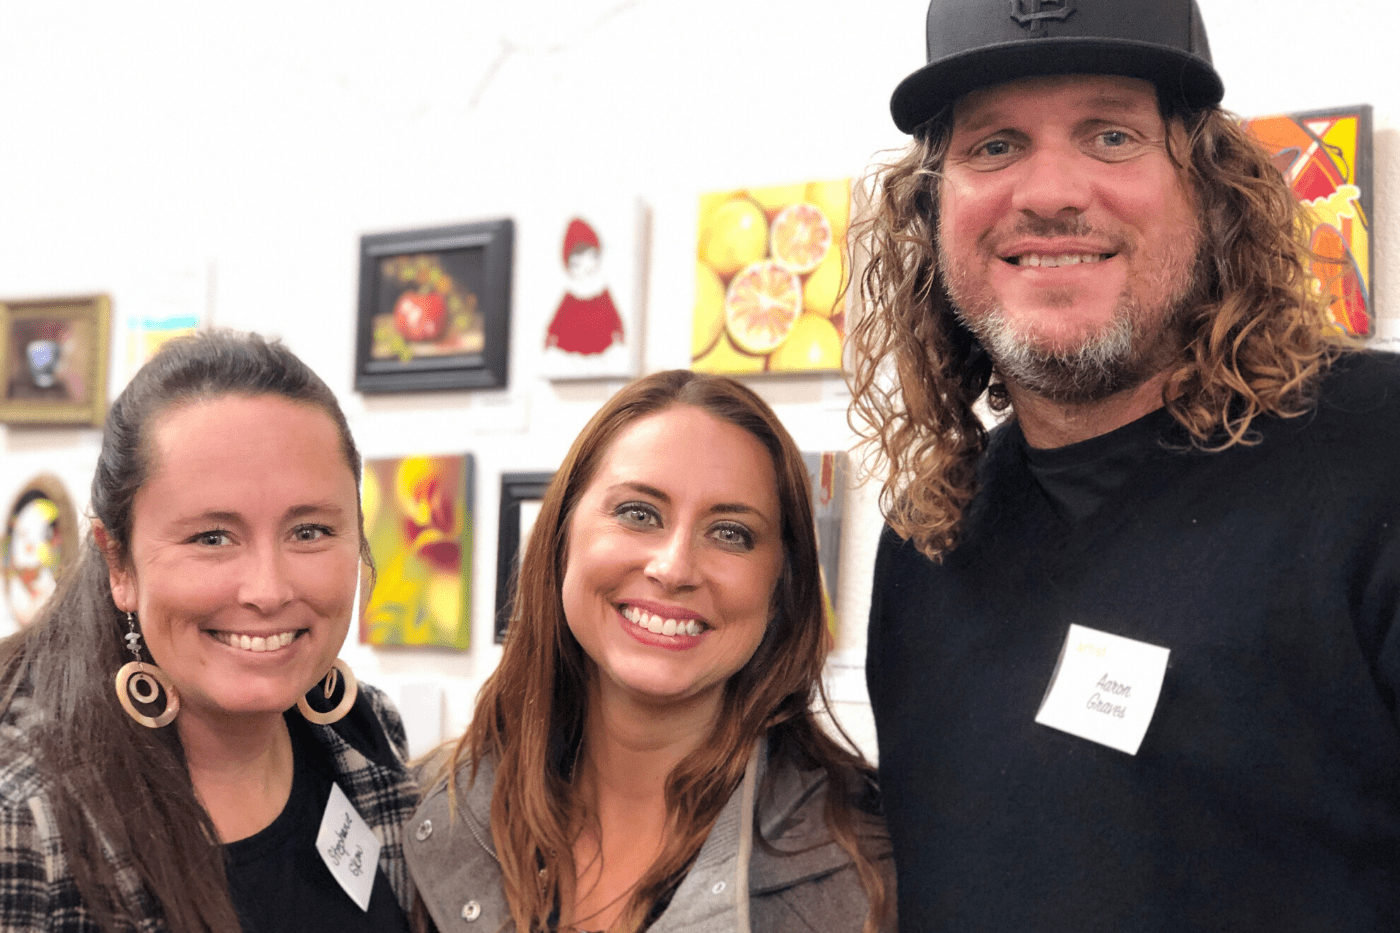 Artist members pose for photo at art gallery in Hollister, California